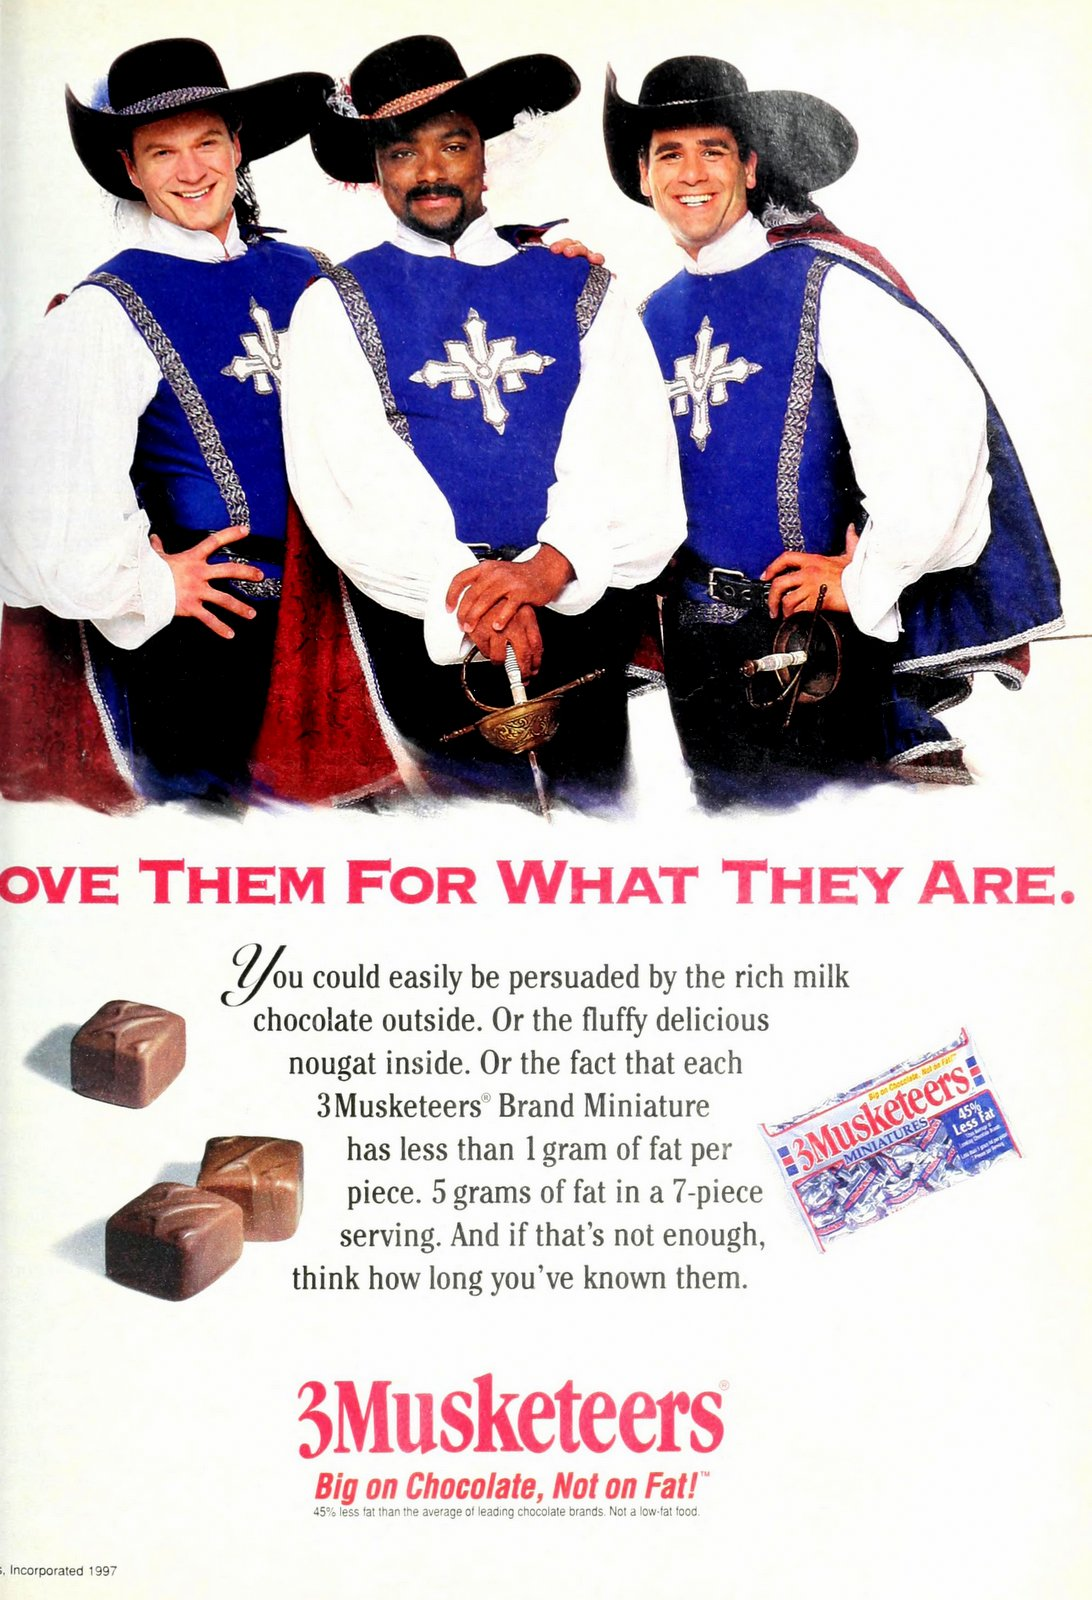 Vintage 3 Musketeers chocolate mini candy bars (1996)